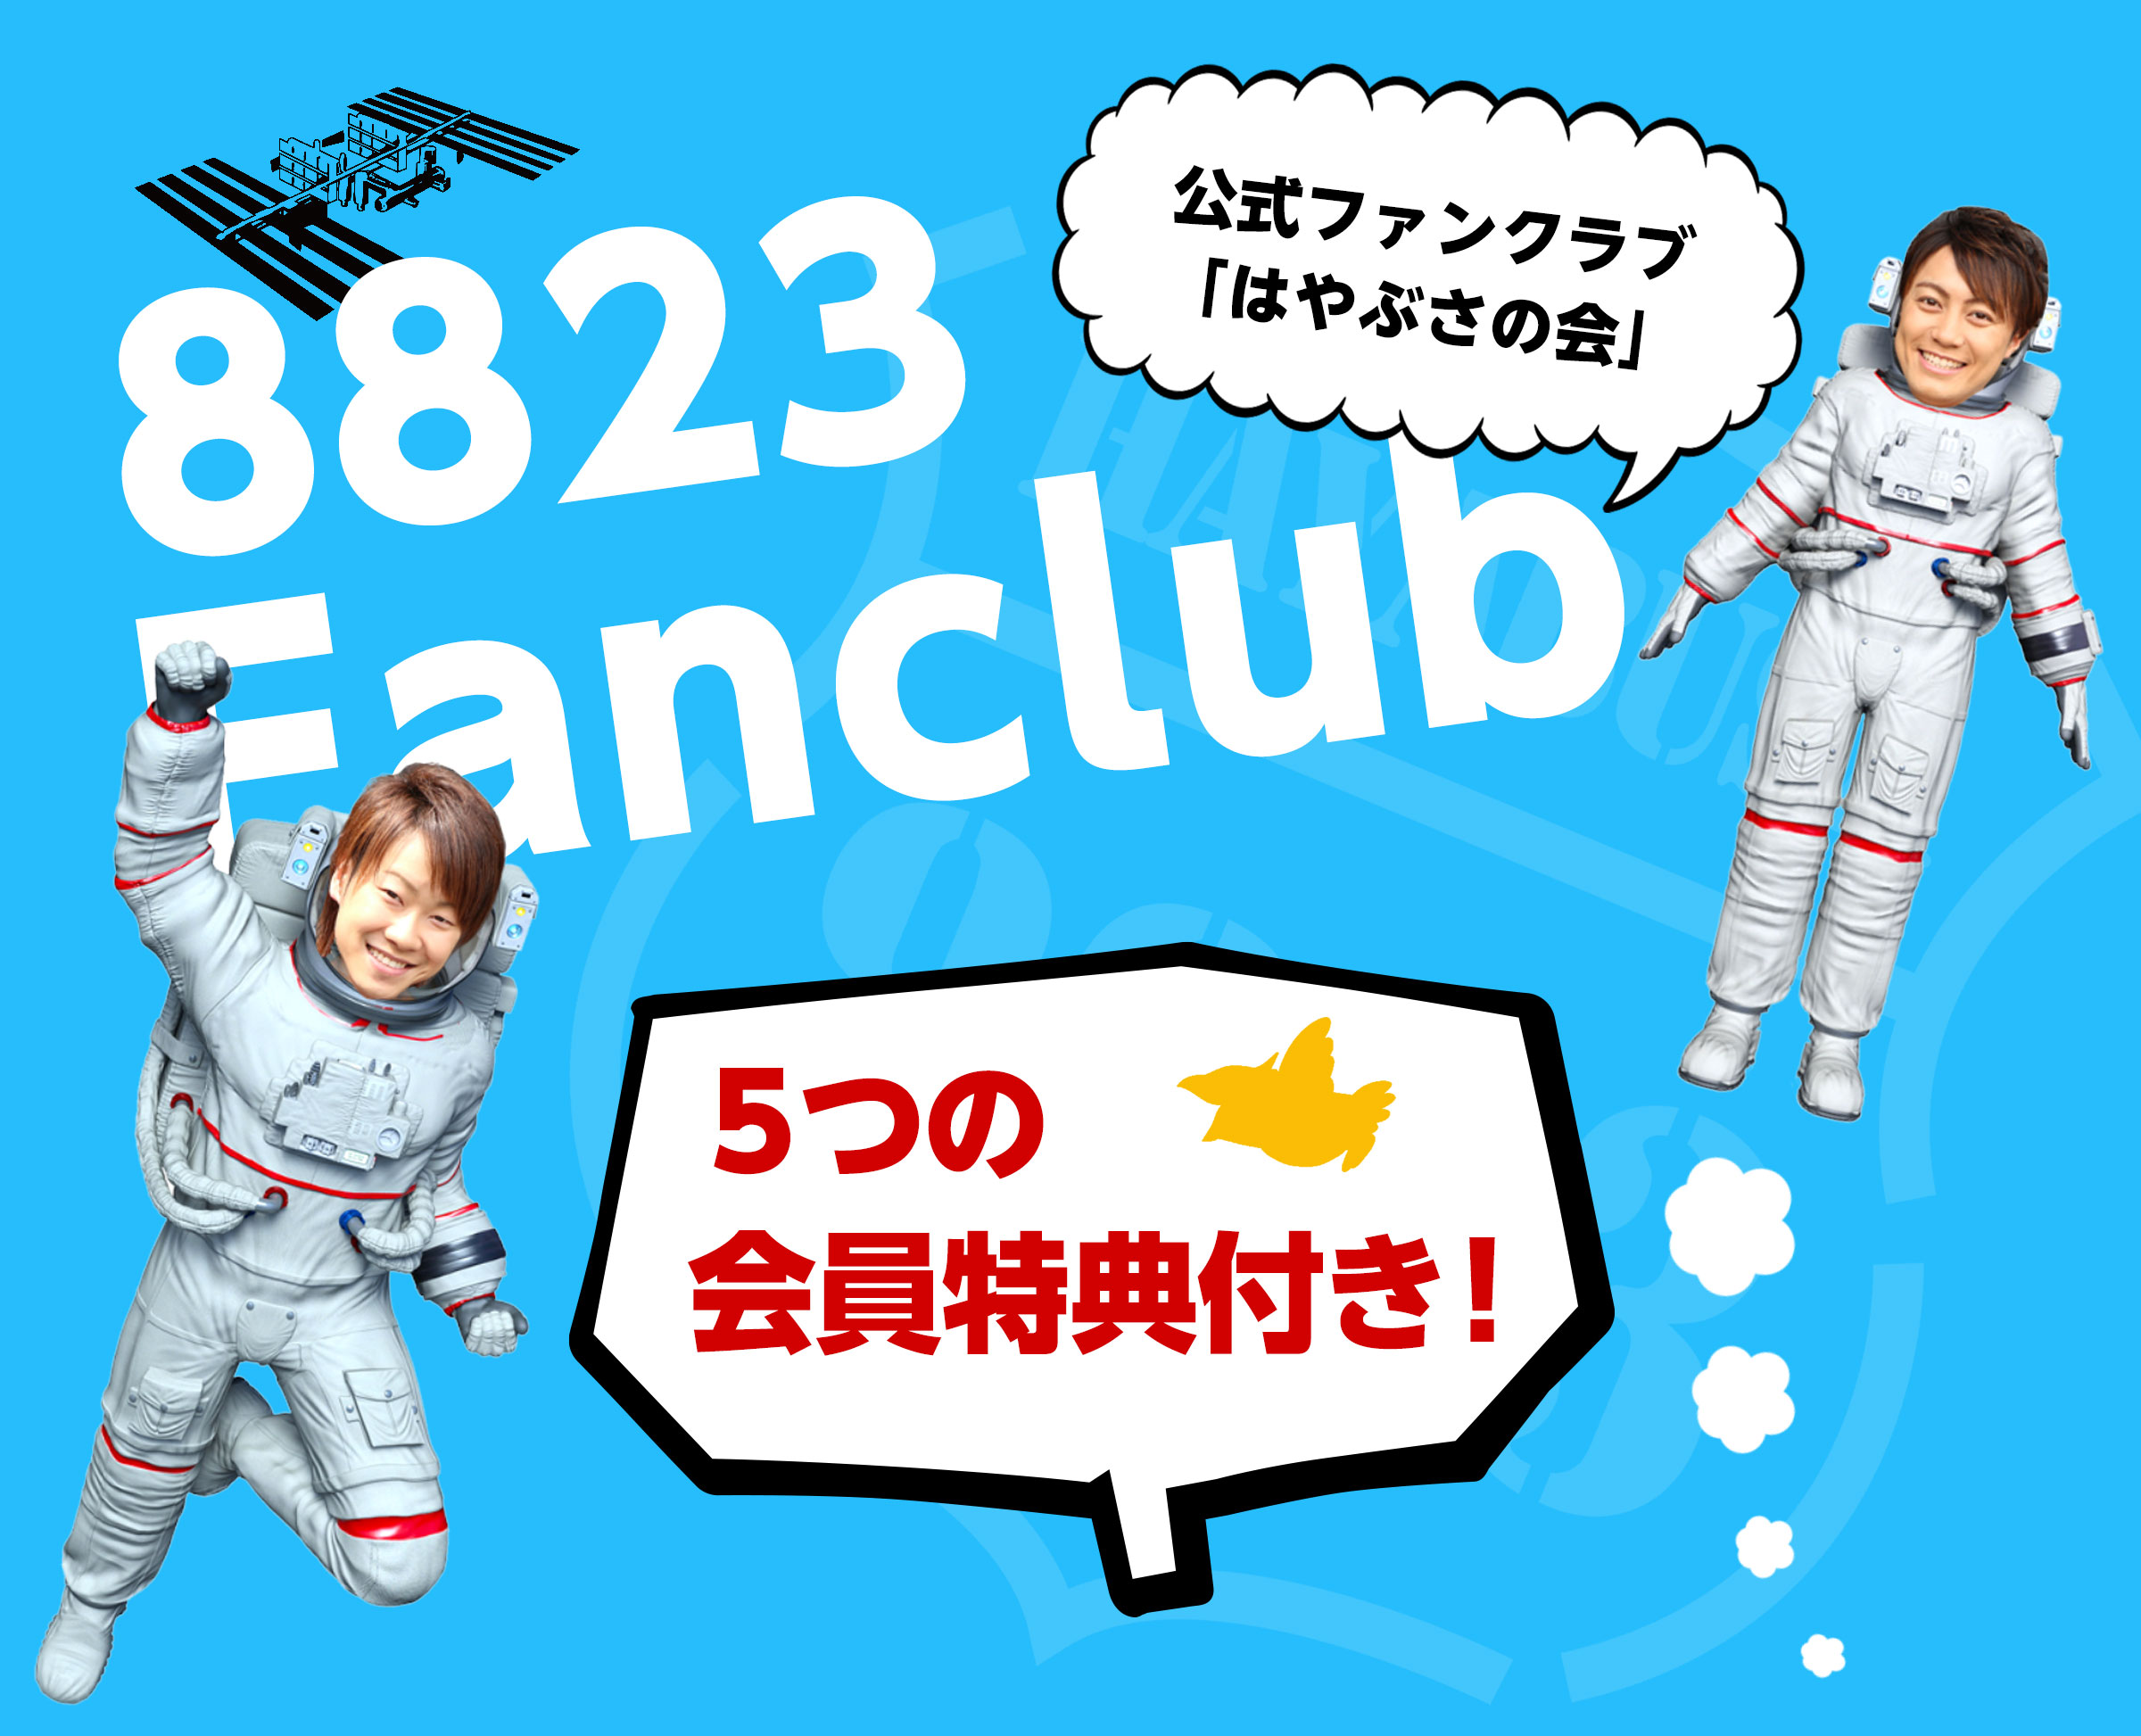 Fan-club officiel Hayabusa no Kai